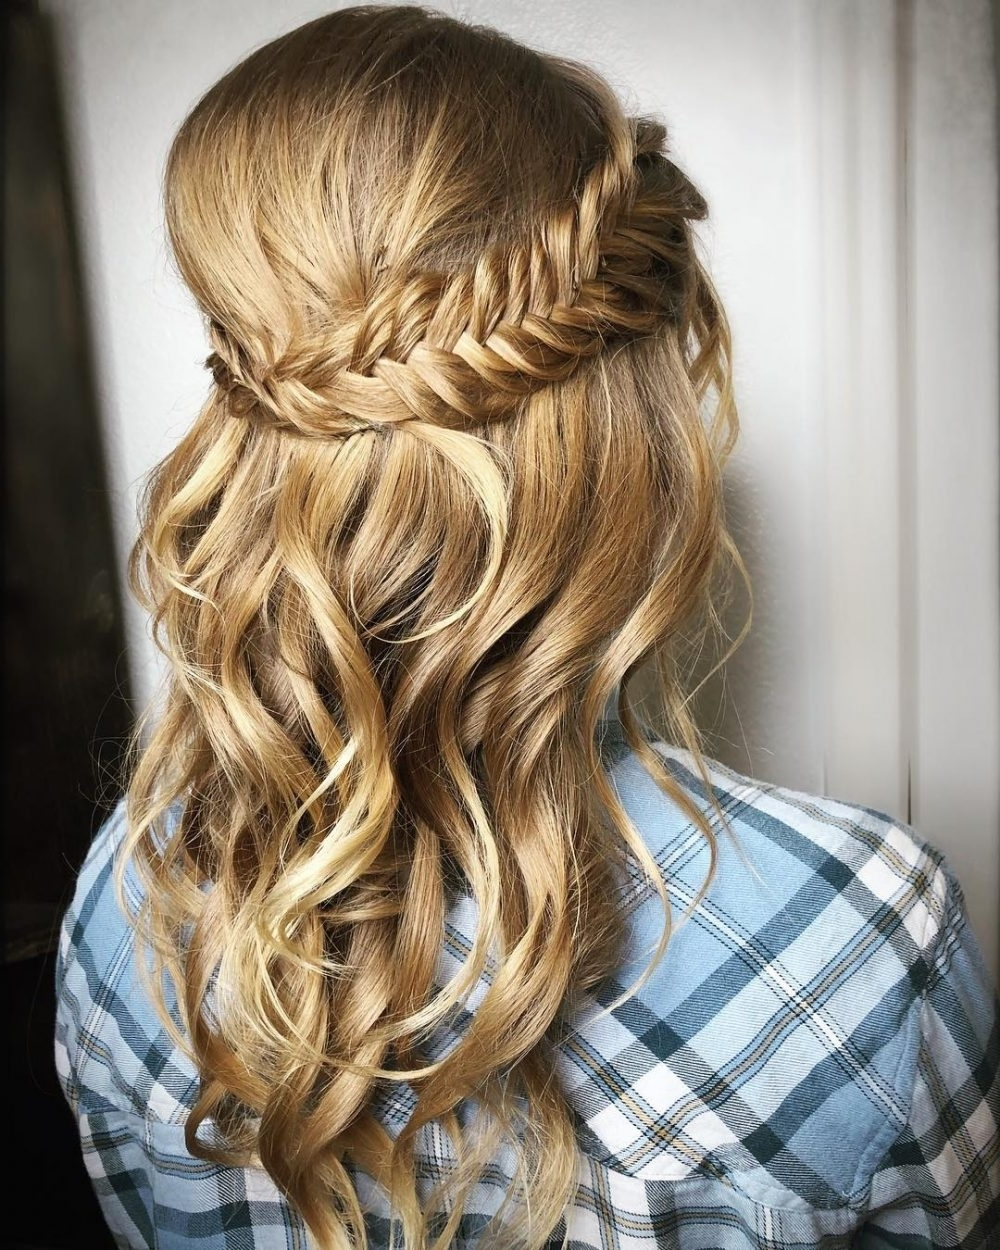 Half Up Half Down Prom Hairstyles – Pictures And How To's For Well Known Formal Half Ponytail Hairstyles (View 3 of 20)